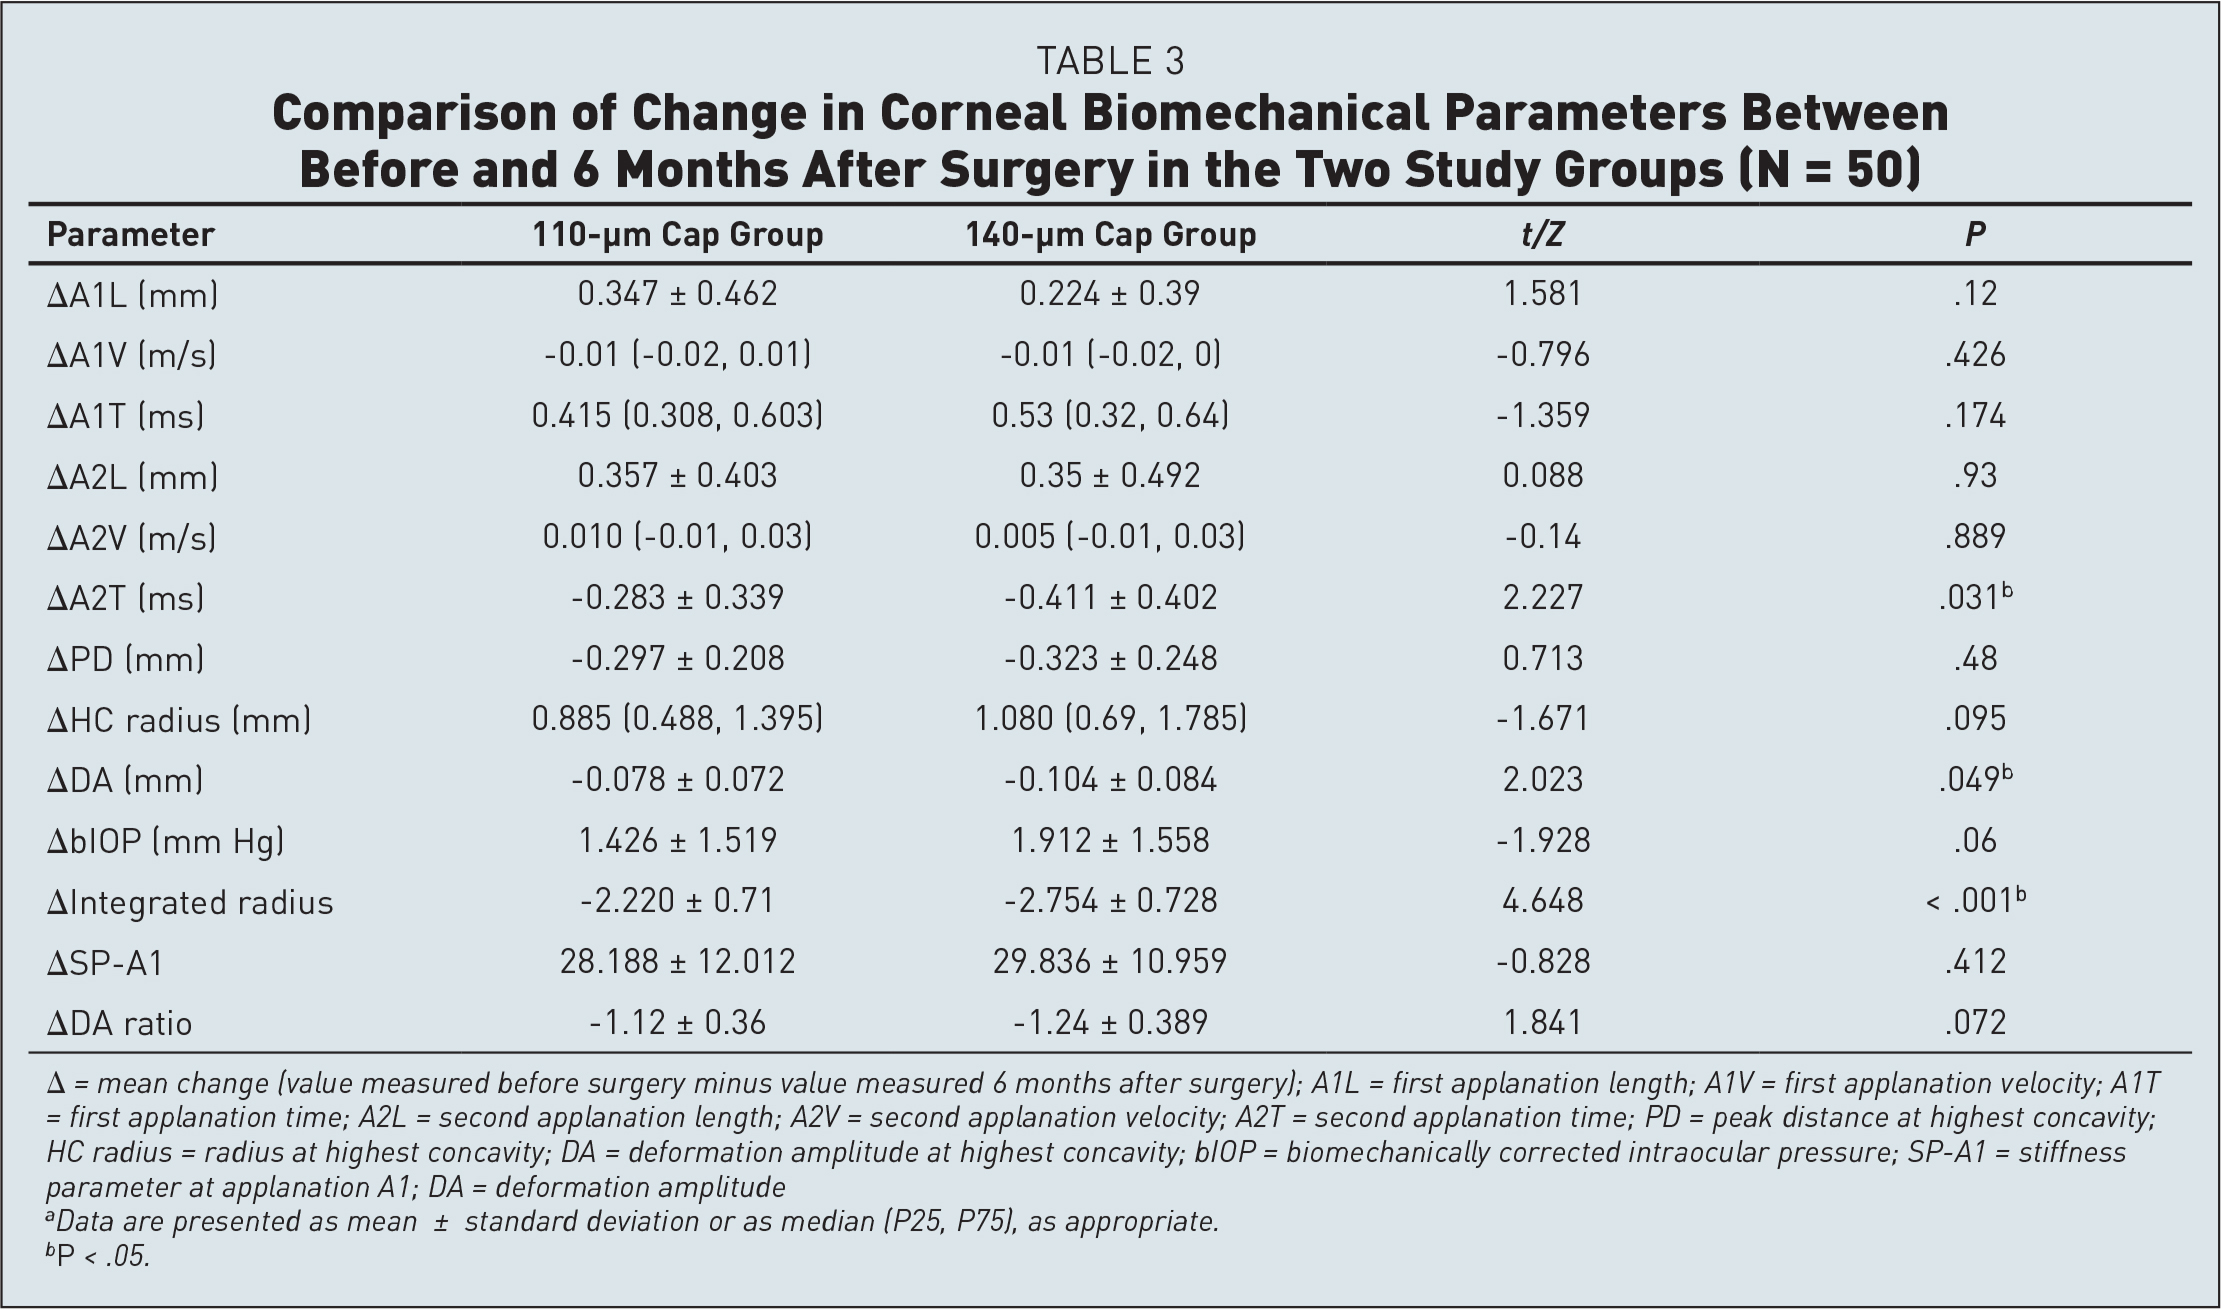 Comparison of Change in Corneal Biomechanical Parameters Between Before and 6 Months After Surgery in the Two Study Groups (N = 50)